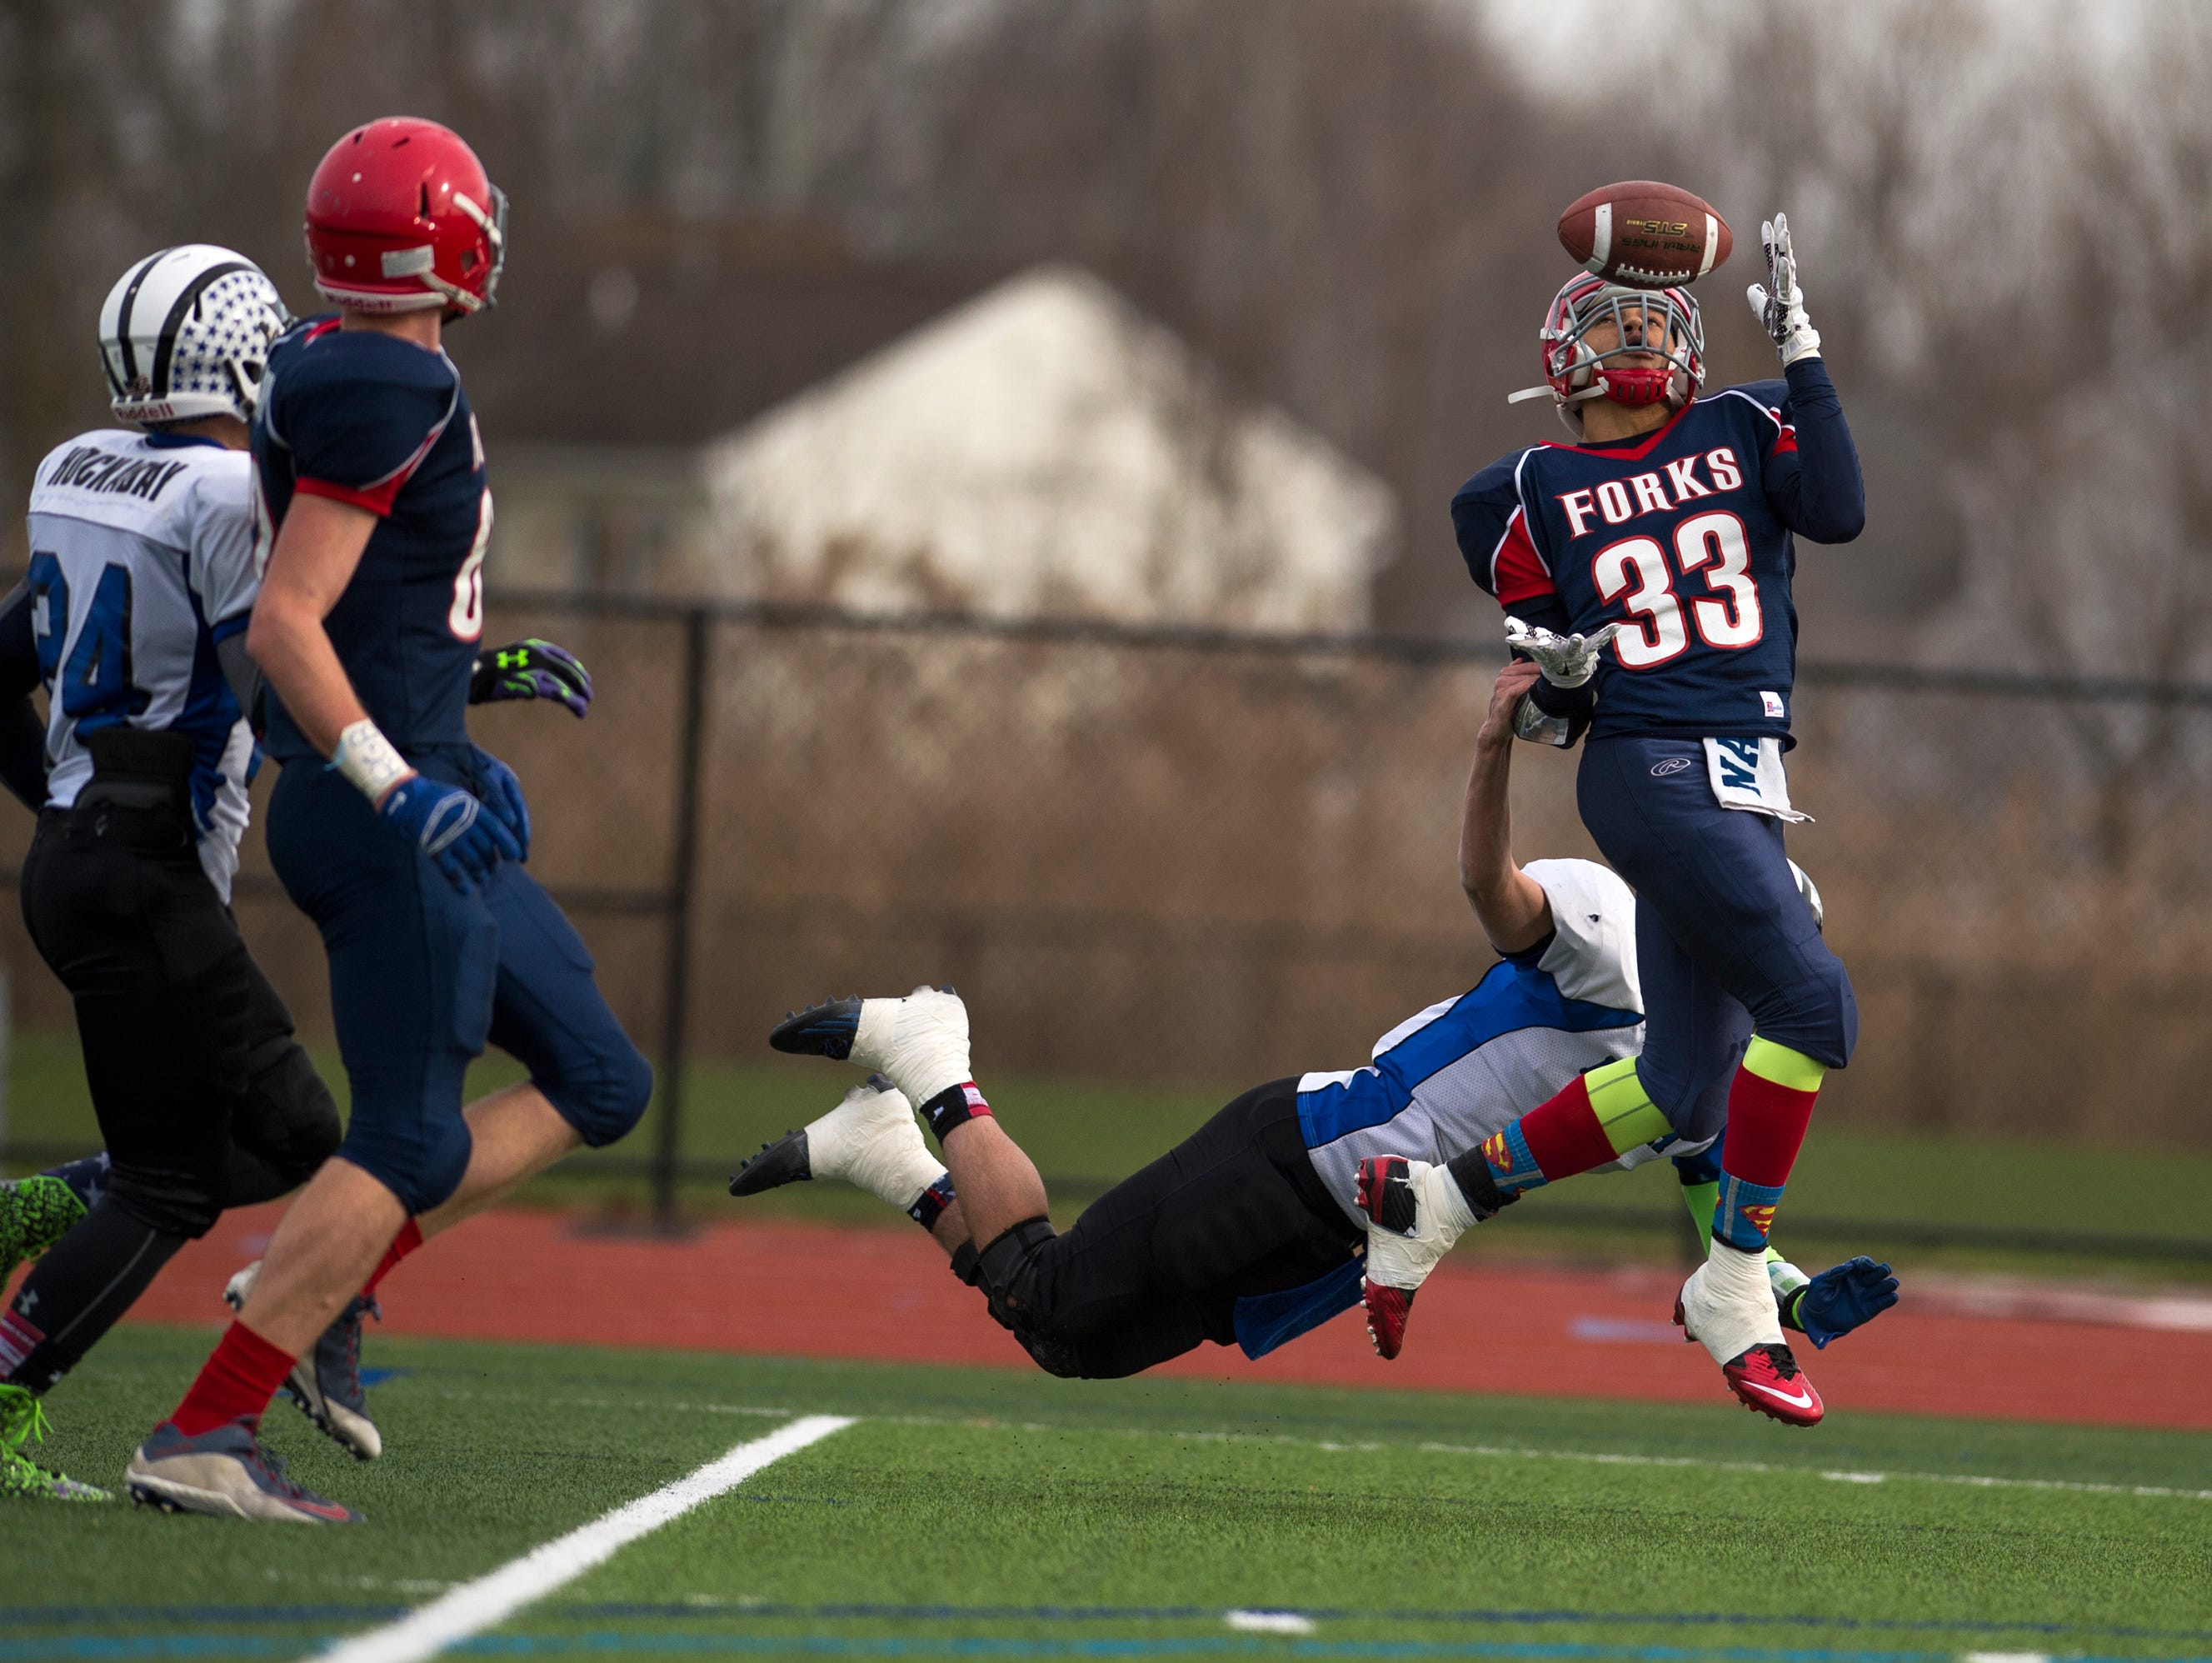 Chenango Forks traveled to Syracuse to take on Bath in the Class C state playoff semifinals on Saturday, Nov. 21, 2015.